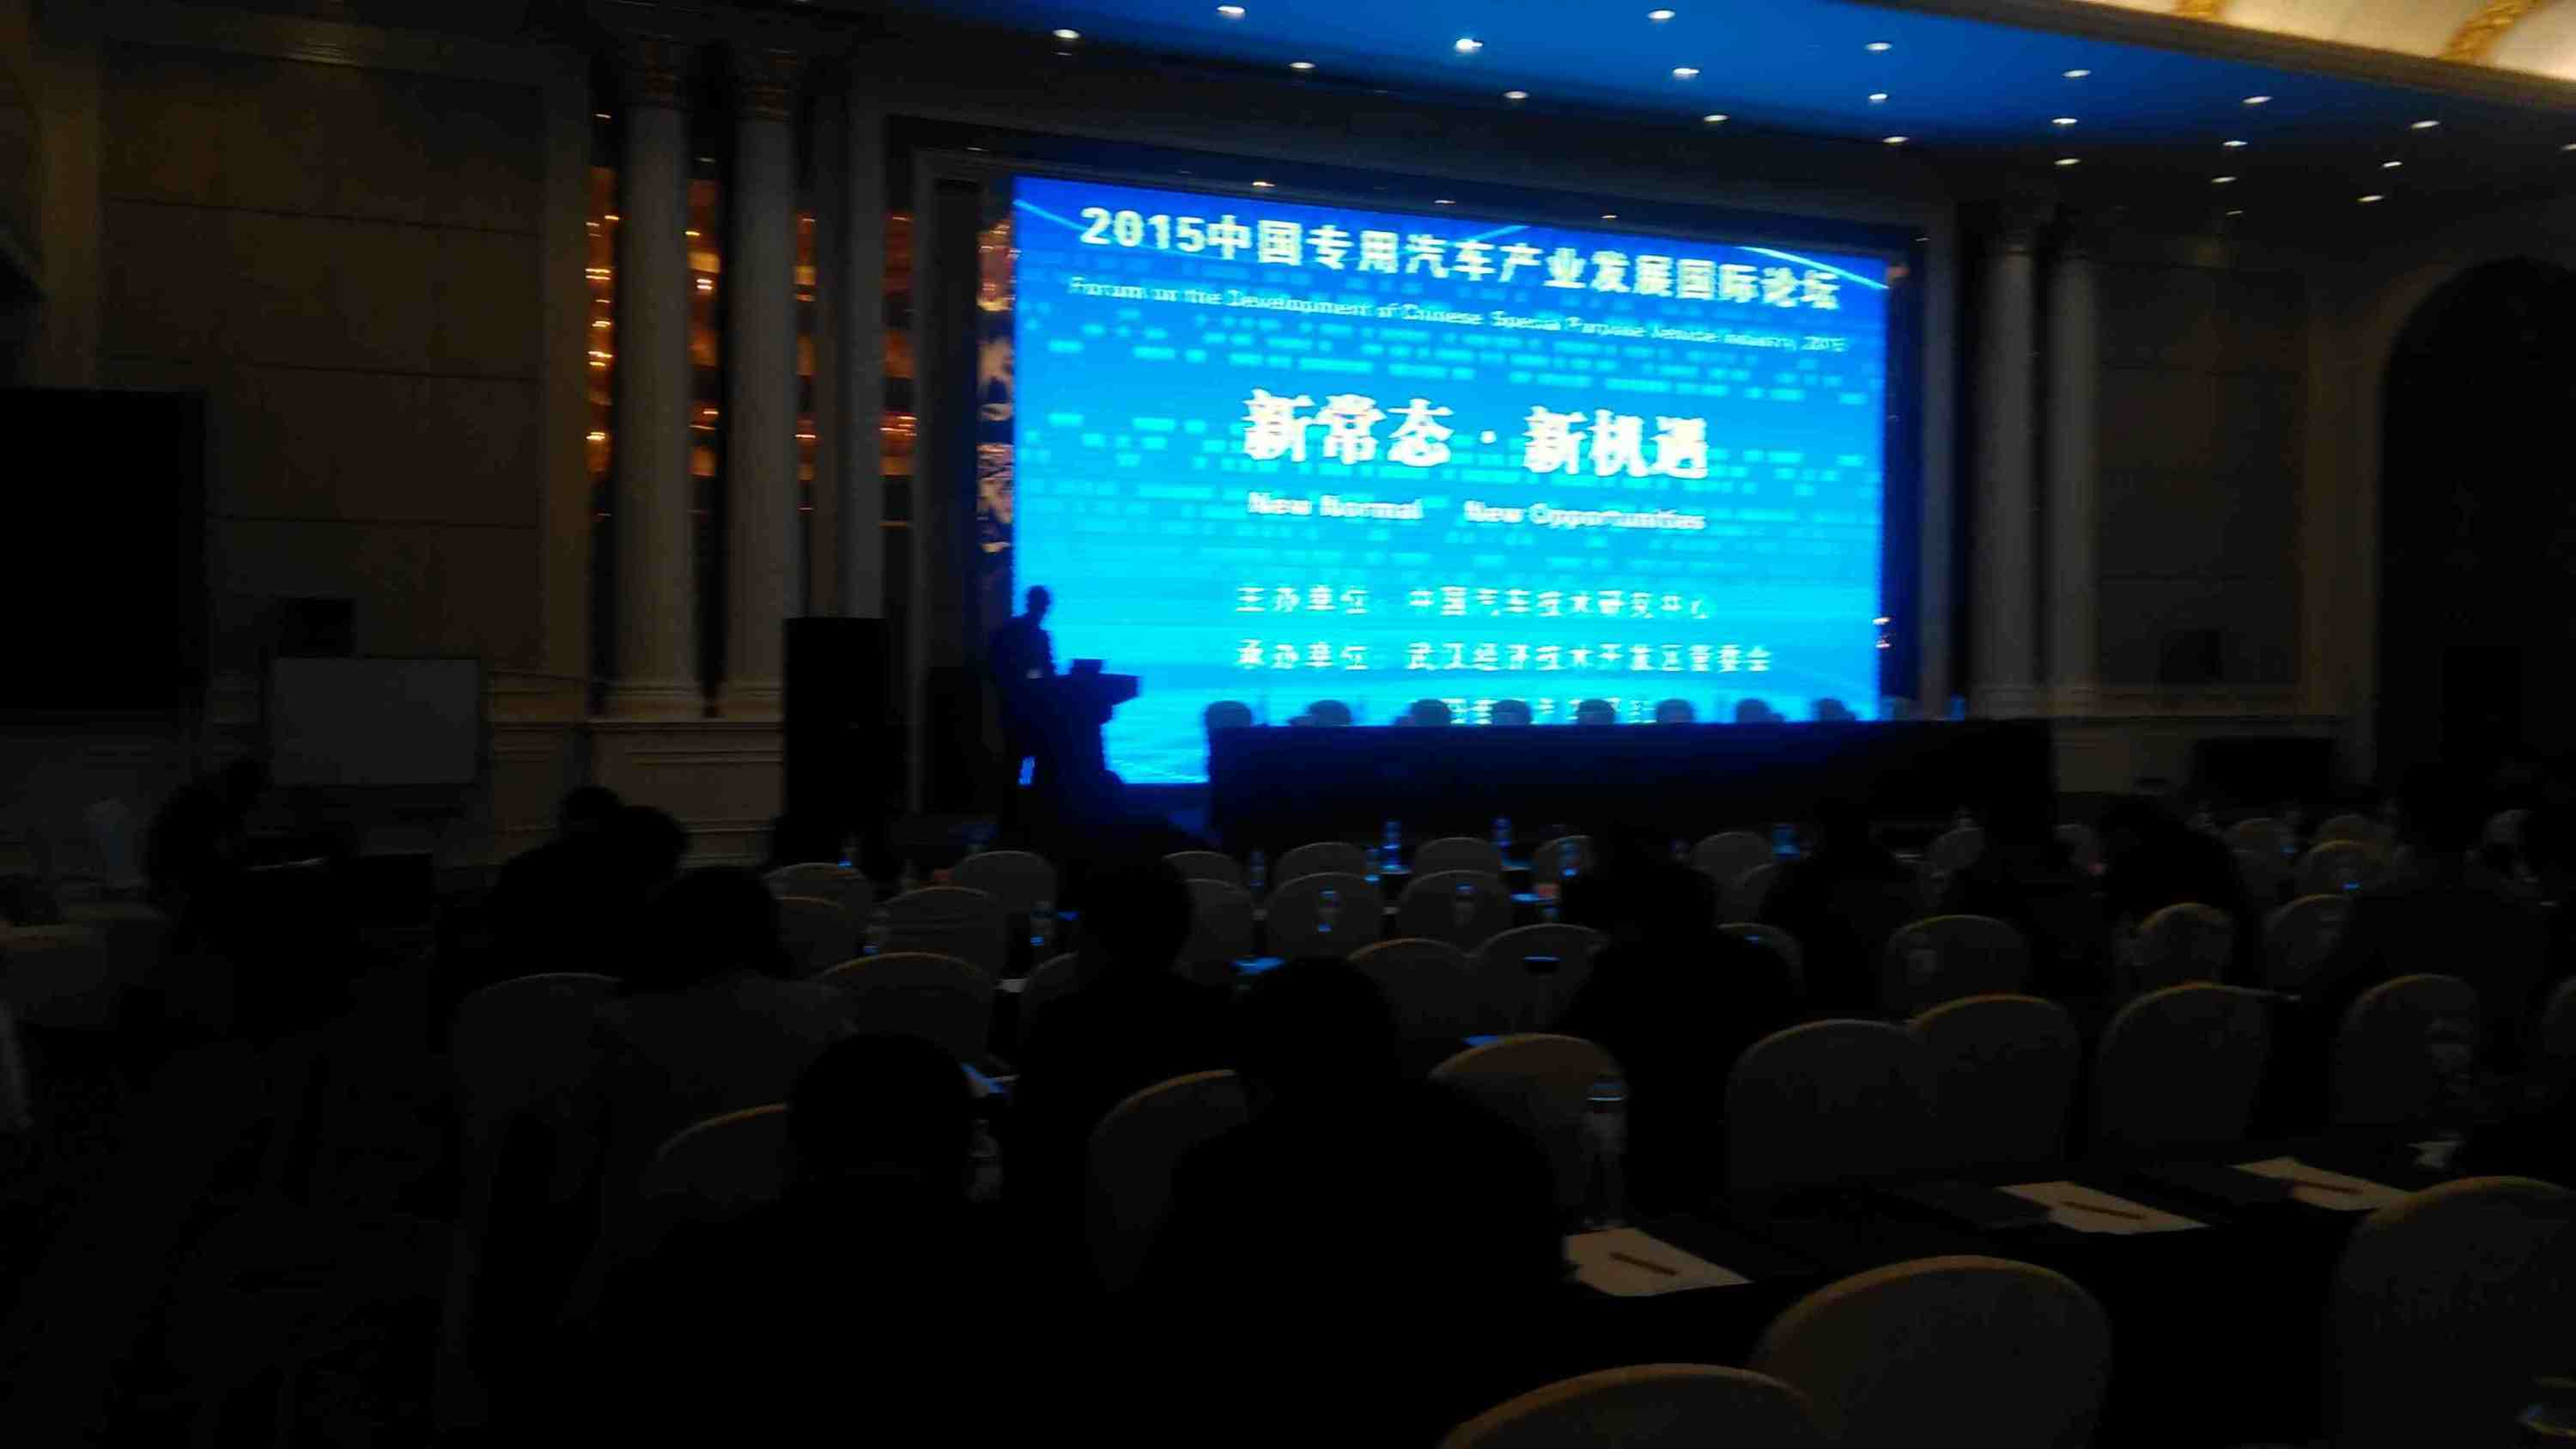 we attend the 2015 China Automotive Industry Development International Forum dedicated